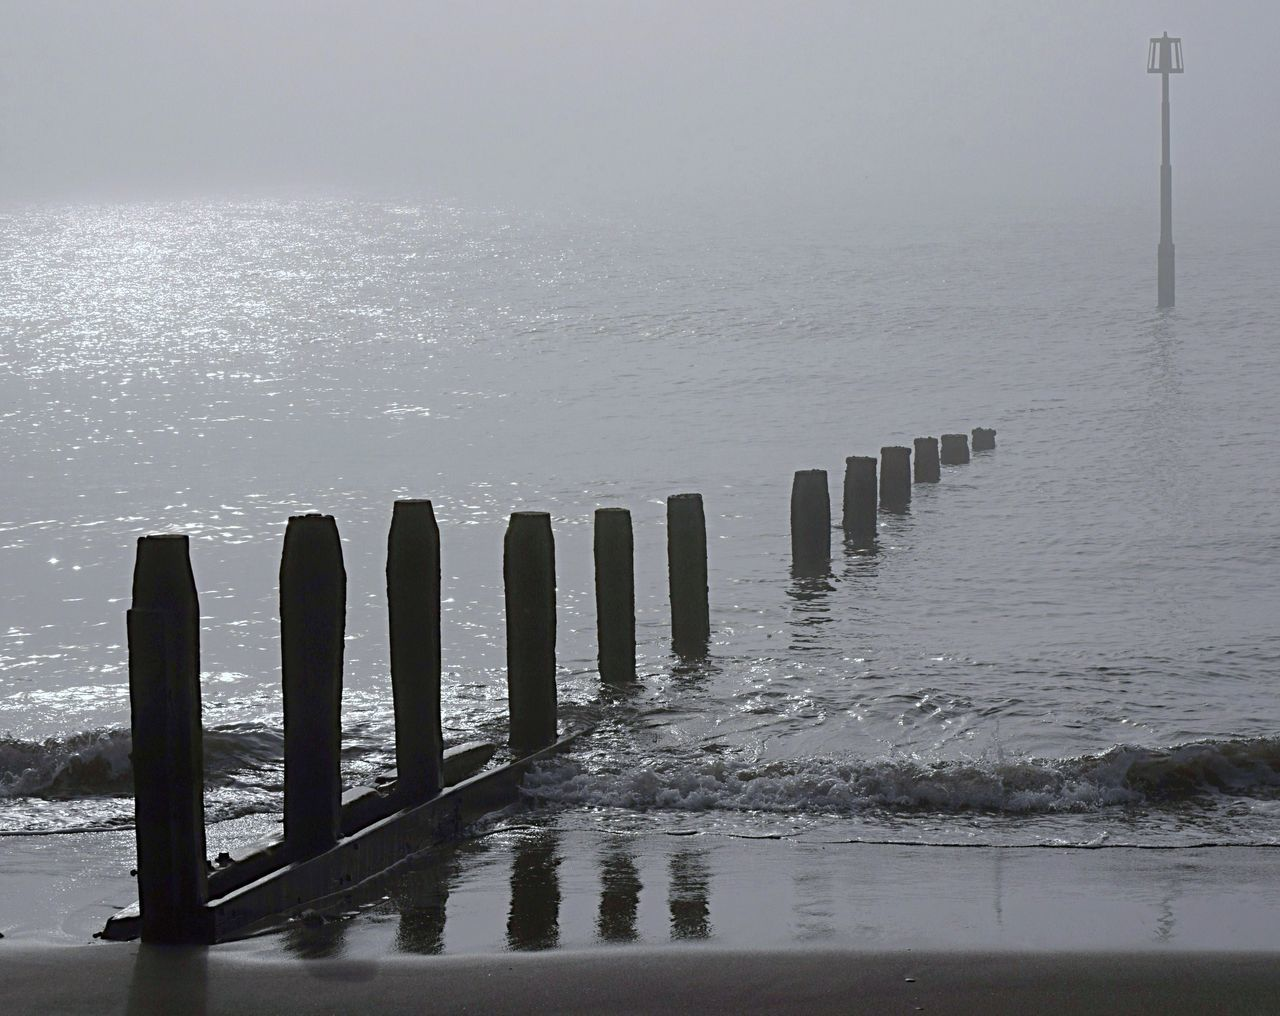 water, sea, nature, weather, wooden post, outdoors, cold temperature, tranquility, beauty in nature, day, fog, winter, no people, scenics, beach, horizon over water, sky